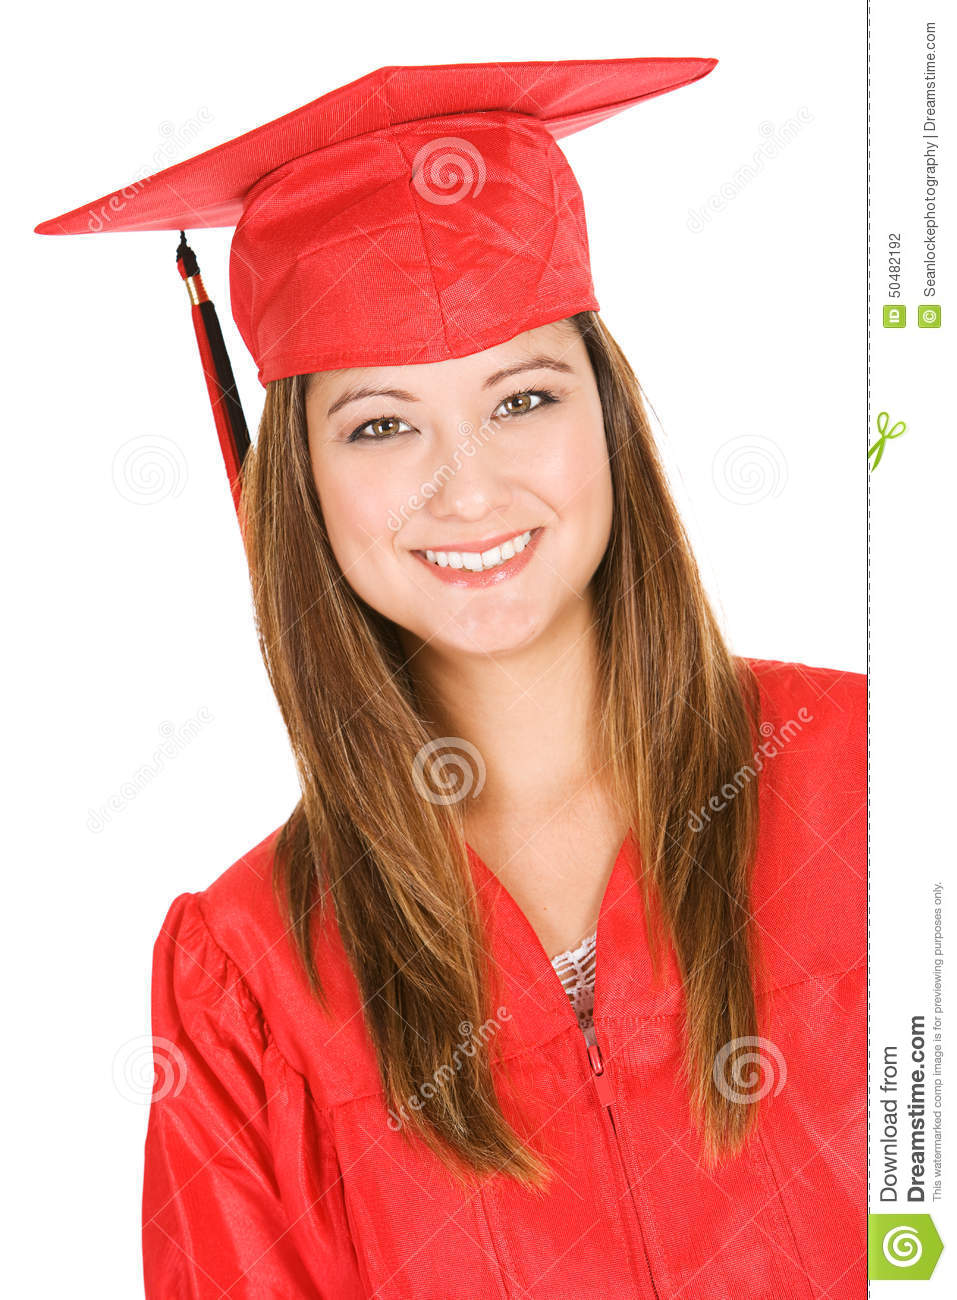 Graduate: Portrait Of Student In Red Cap And Gown Stock Photo ...